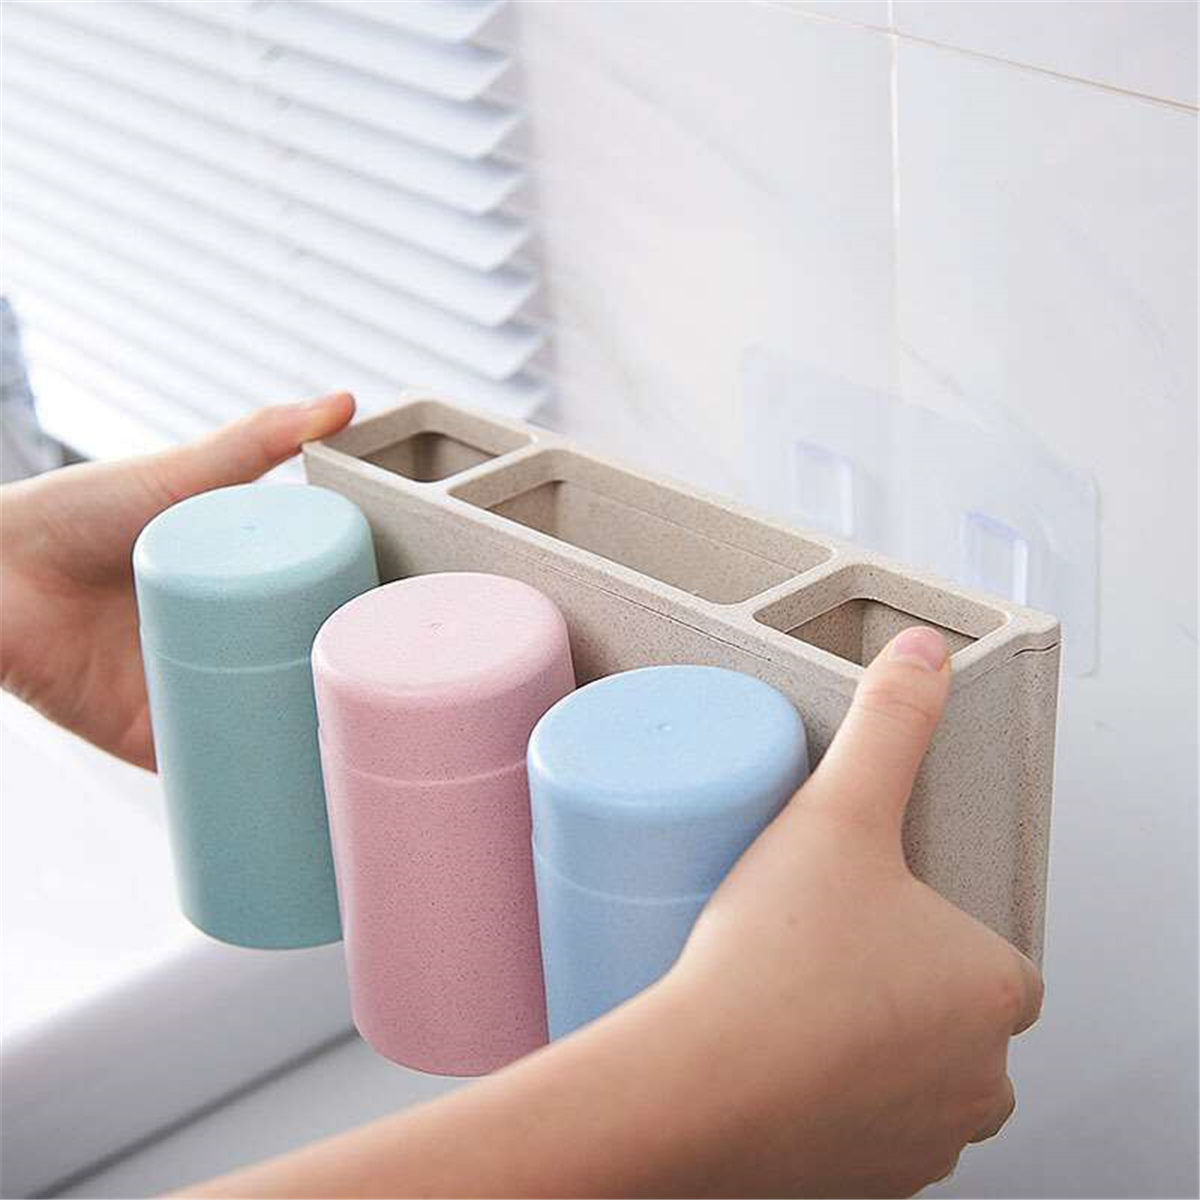 Multifunctional Wheat Straw 6 Toothbrushes Holder 2 Cups Suction Stand Home Bathroom Wall Mount